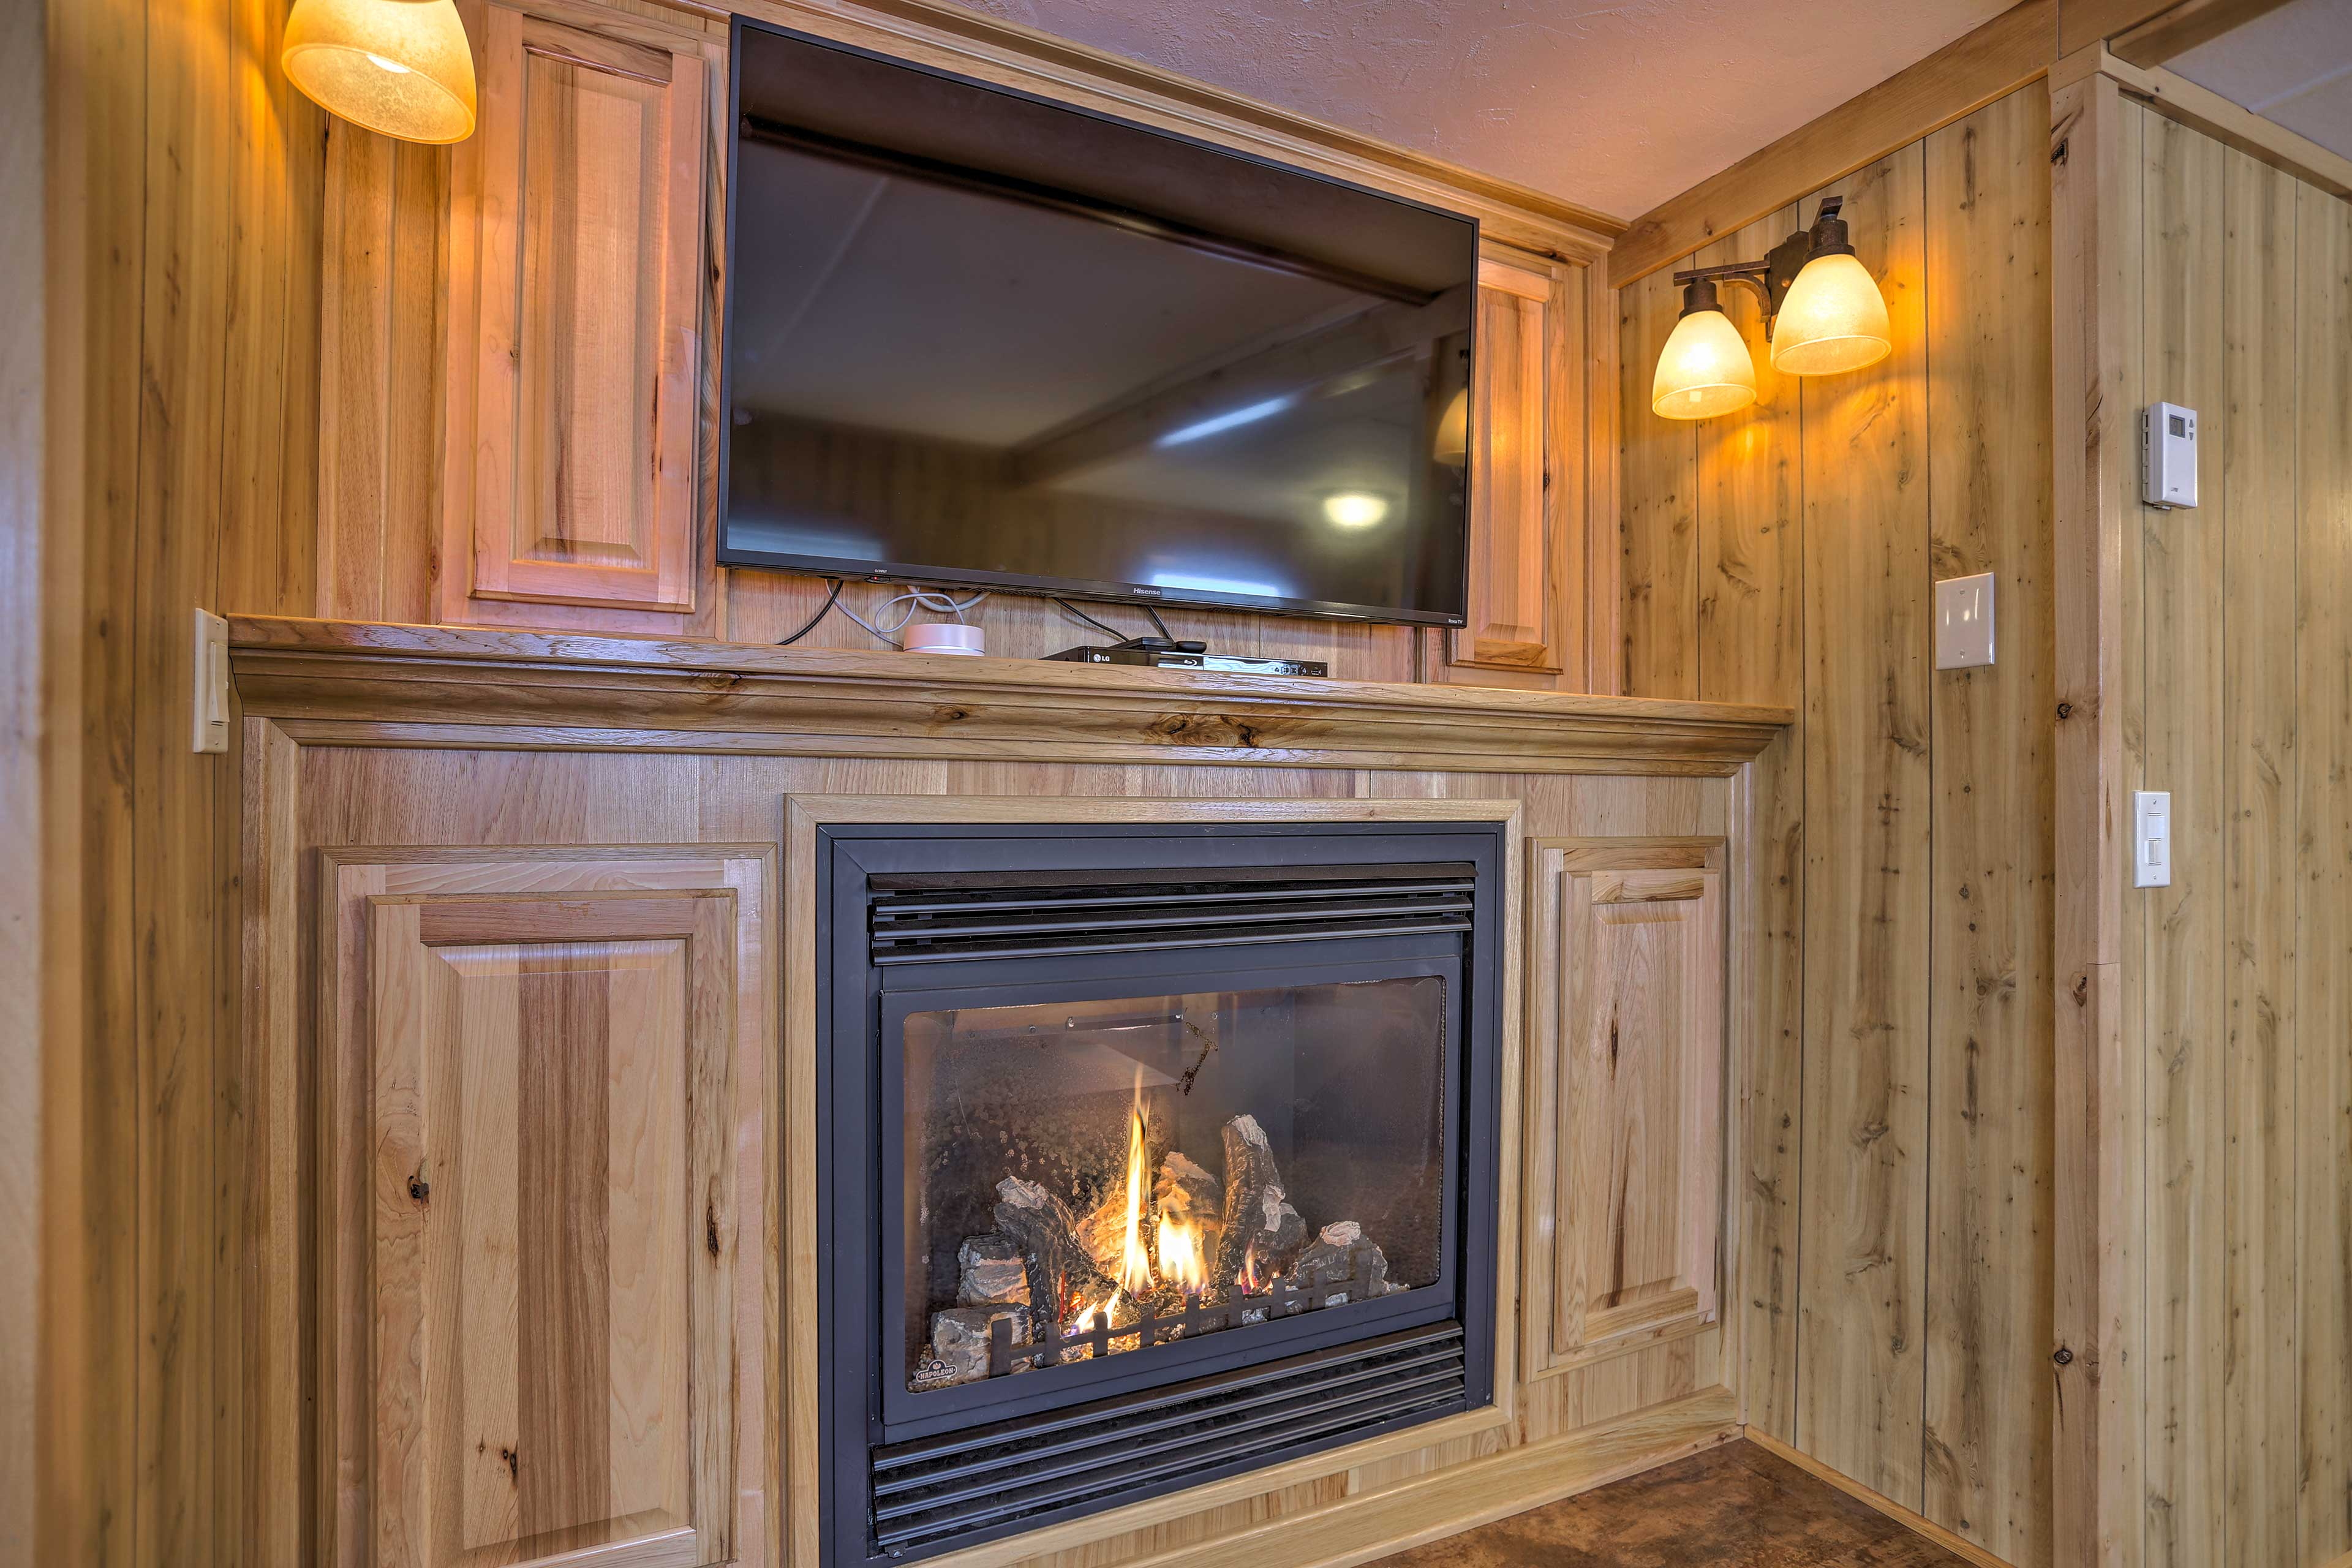 Turn on the fireplace and let the warmth fill the room.